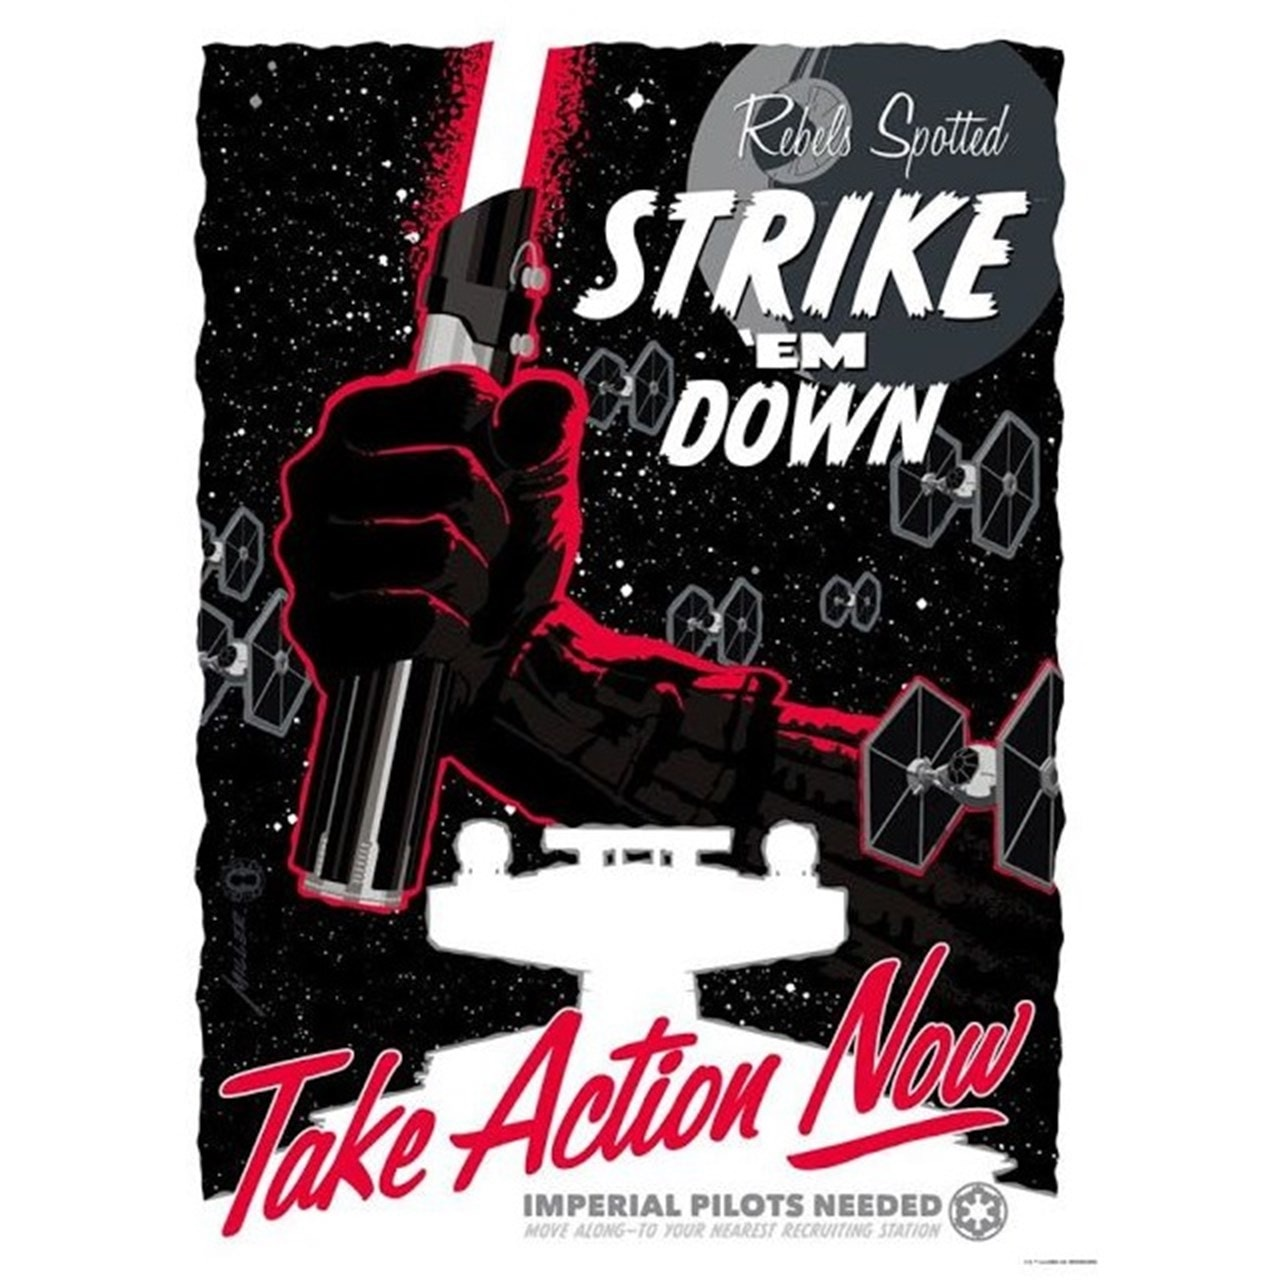 Star Wars: Take Action Now: Limited Edition Art Print - 1